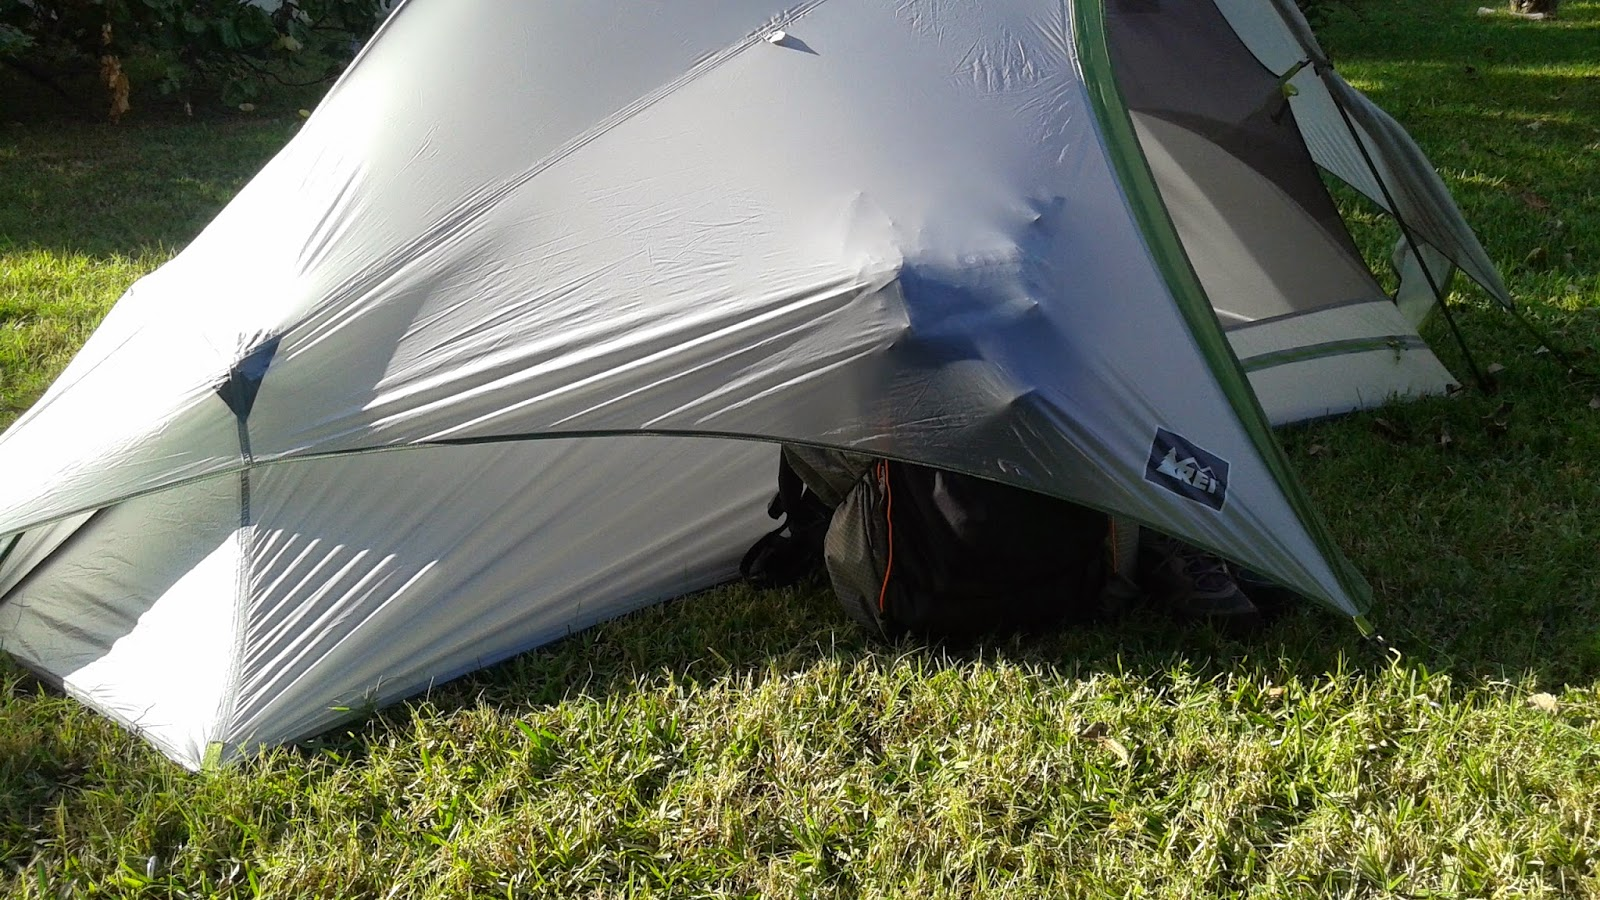 REI Dash 2 Tent with pack and shoes exposed under rain fly. & Packman - Raised by Raccoons: REI DASH 2 TENT REVIEW u0026 MODIFICATION